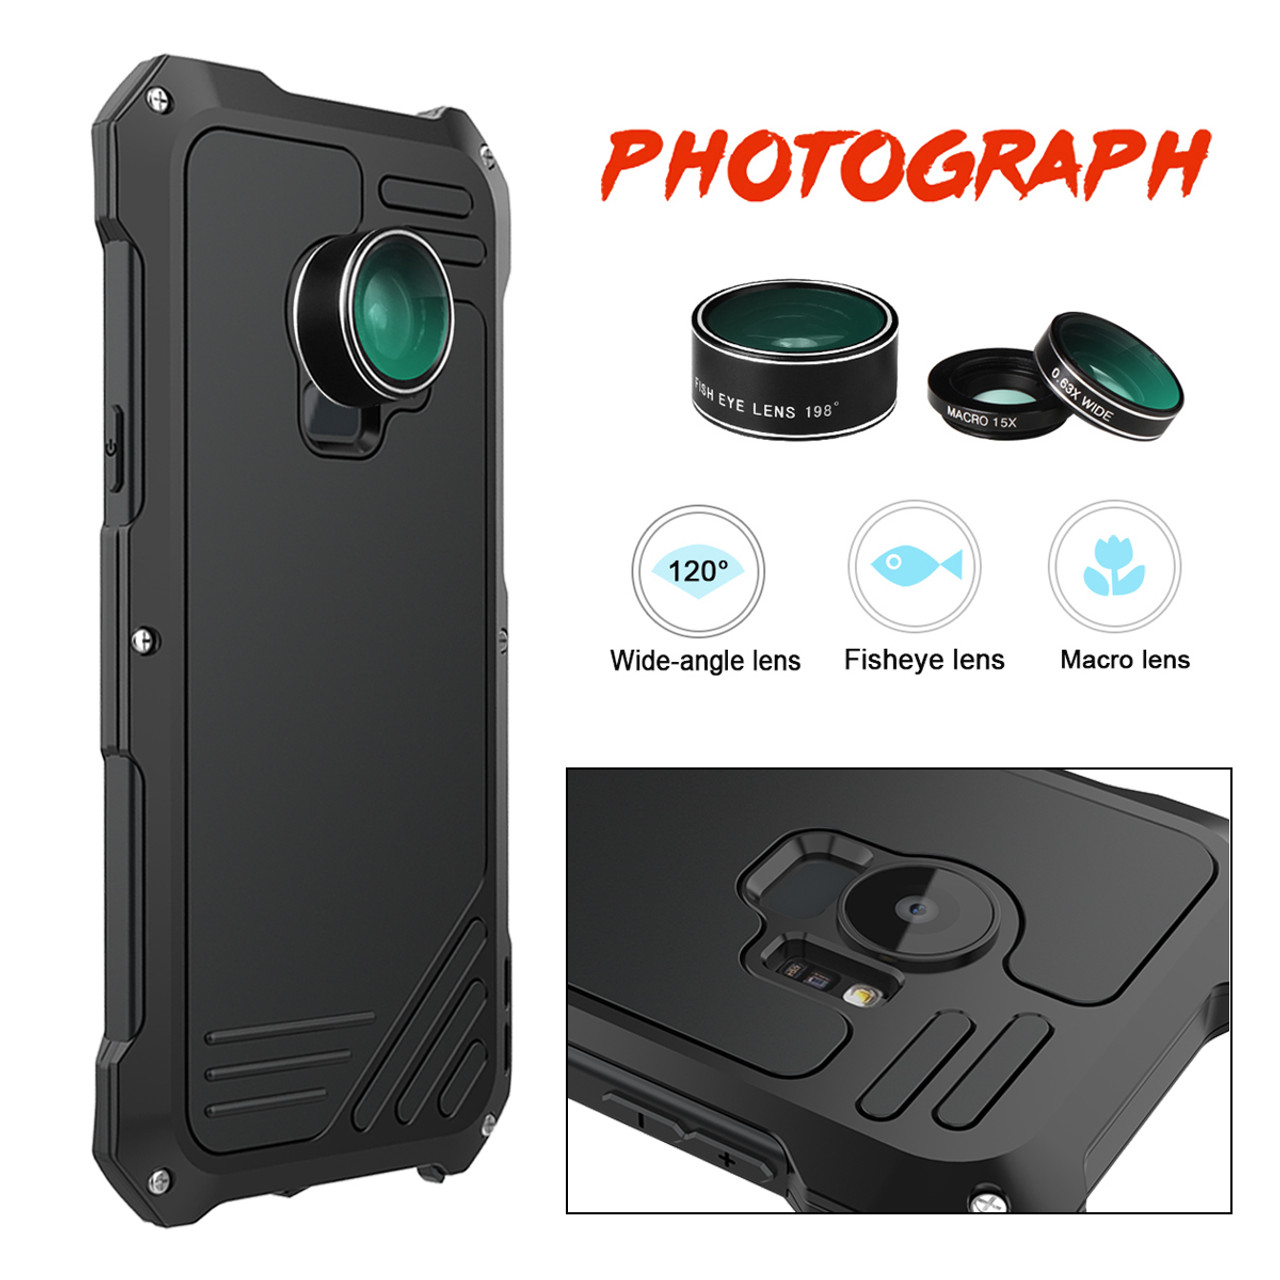 official photos 61cef 7d580 S9 Plus Case Flip Cover Metal Iron Armor for Samsung Galaxy S9 / S9 Plus  Case Phone 3 in 1 Camera Lens Luxury 360 Anti-knock